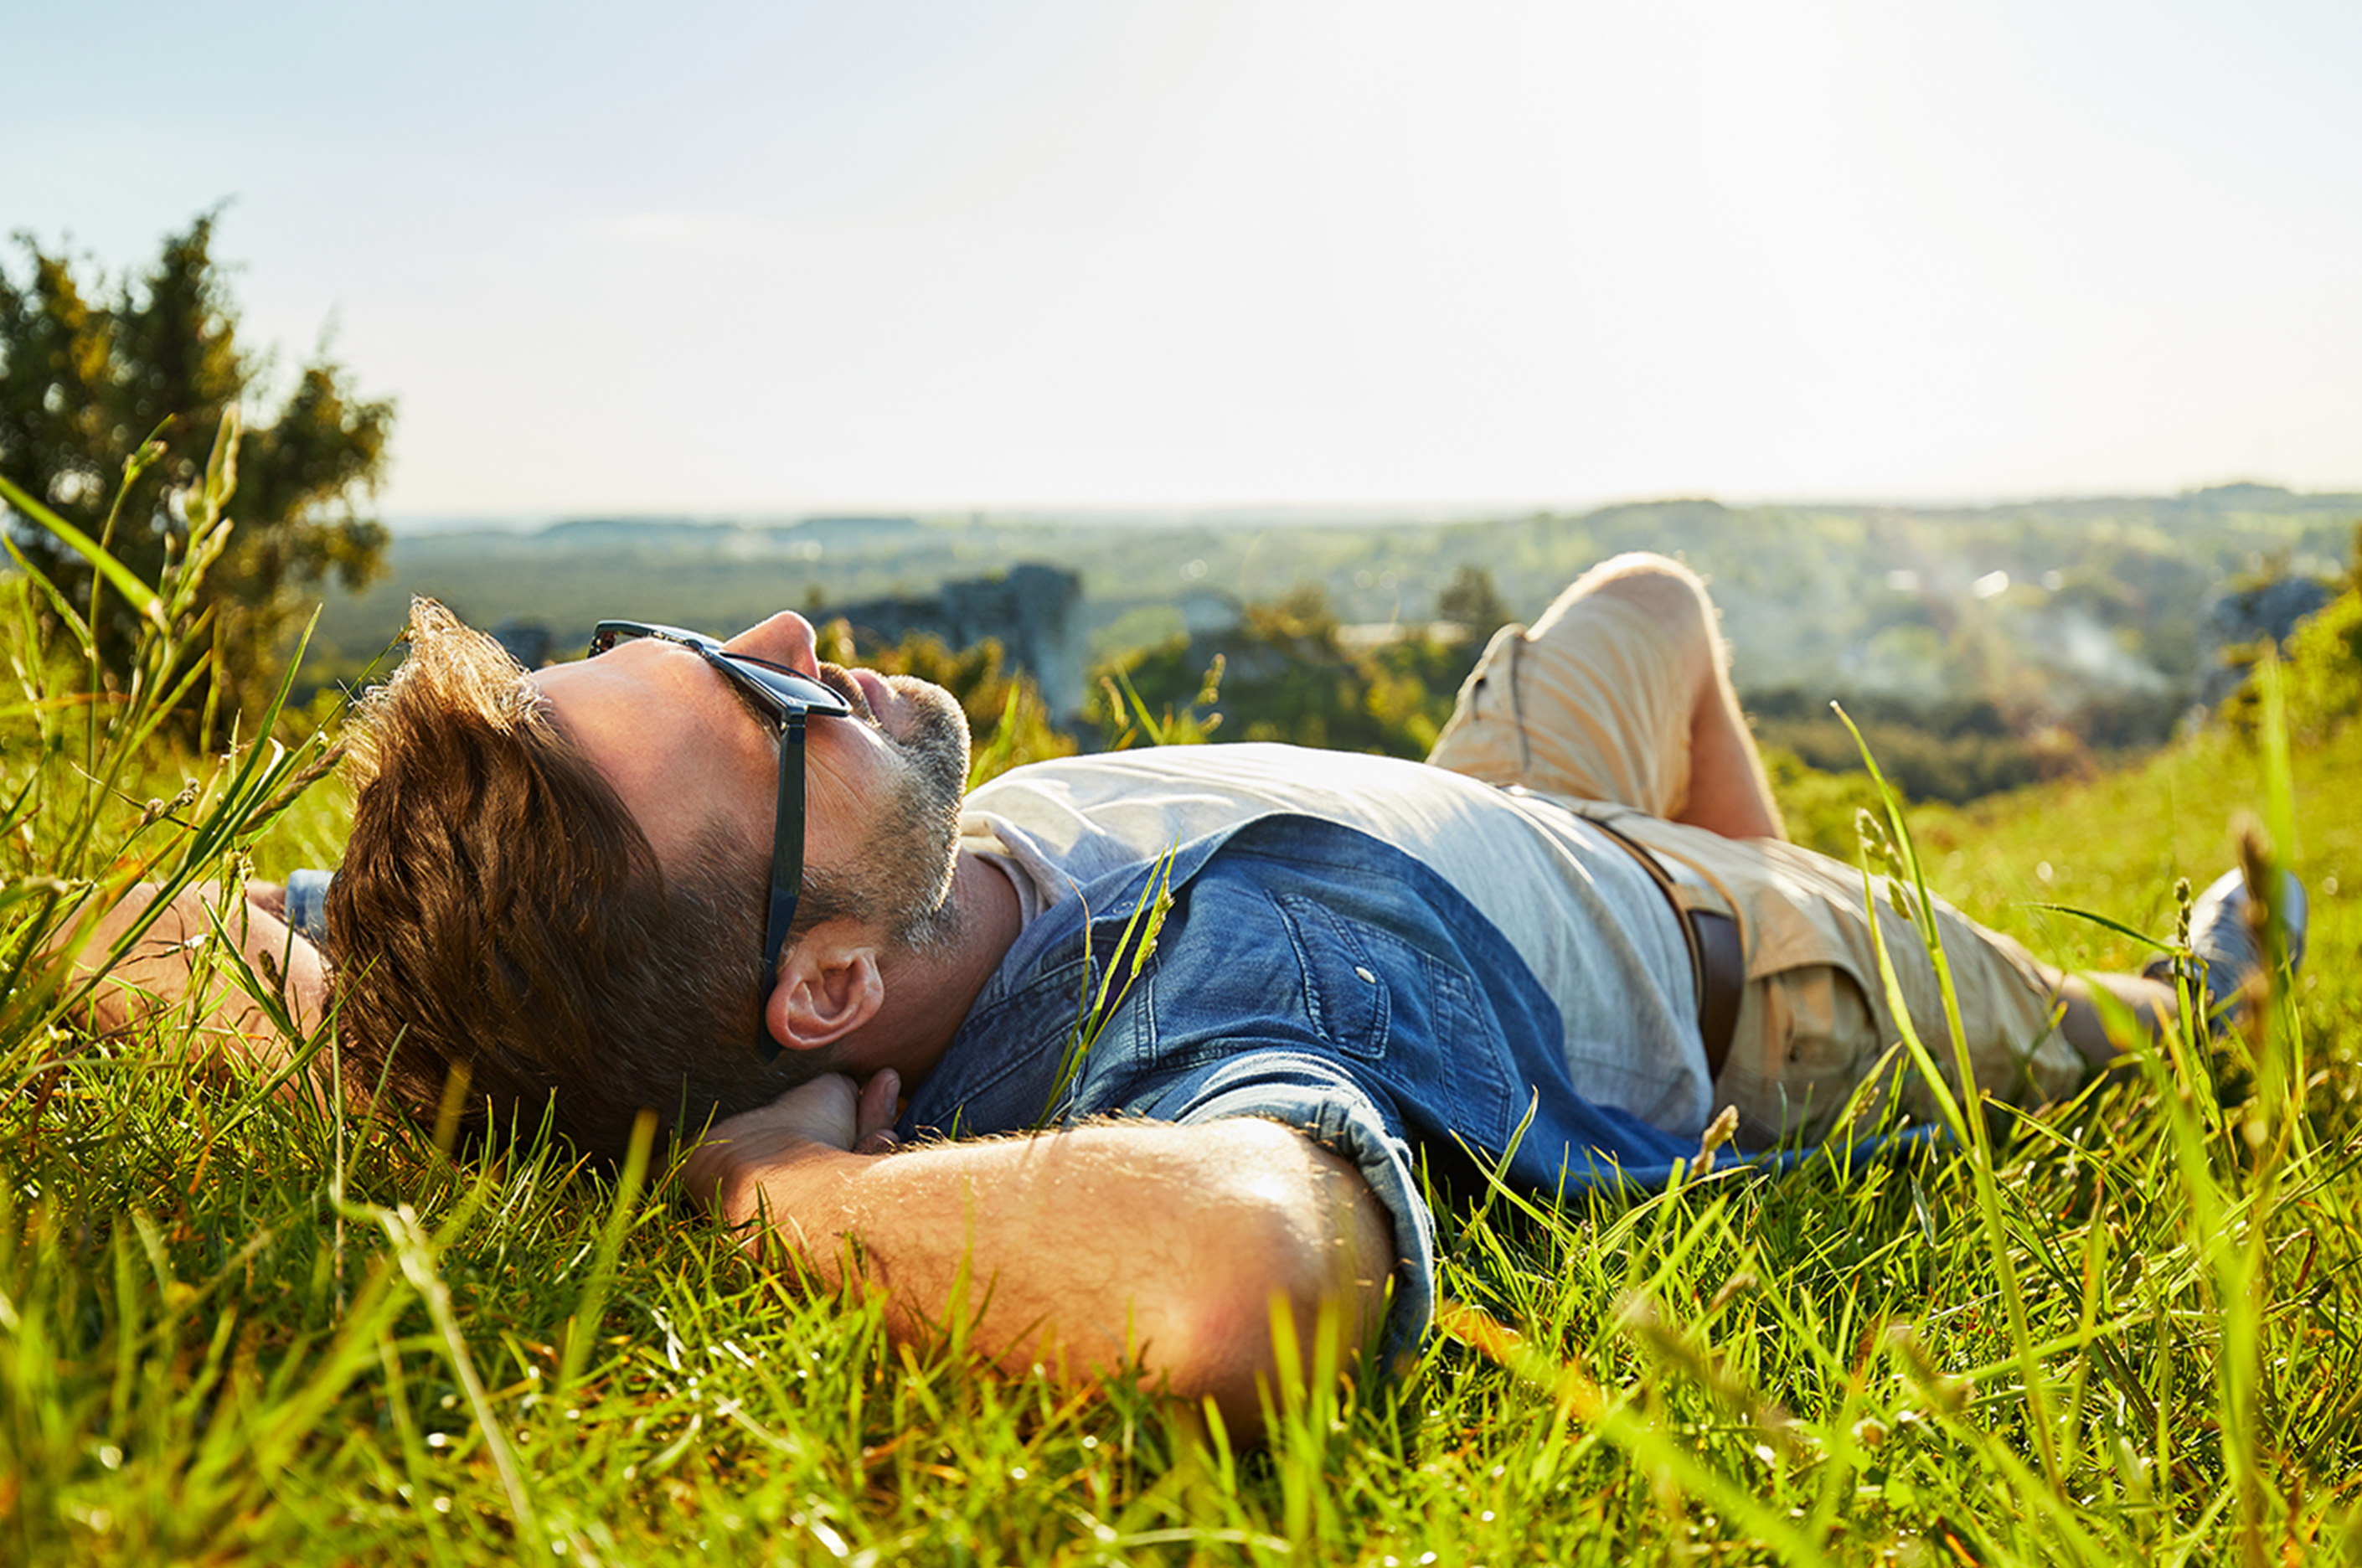 Man laying on grass, enjoying some sunshine